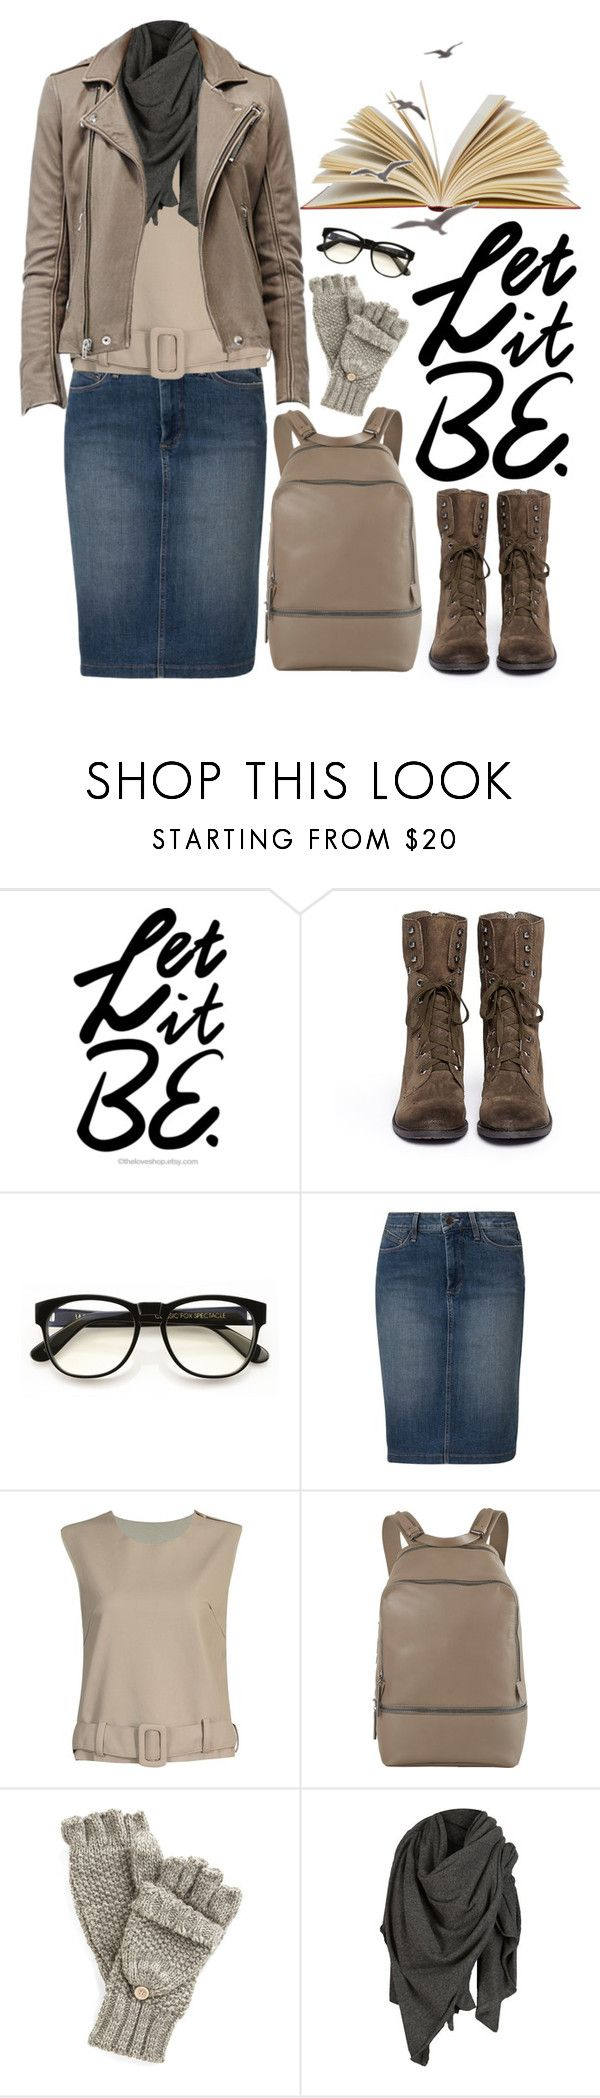 """""""Happy Friday"""" by crblackflag ❤ liked on Polyvore featuring Sam Edelman, Wildfox, NYDJ, 3.1 Phillip Lim, AllSaints, Boots, Tan, backpack and wildfoxglasses"""